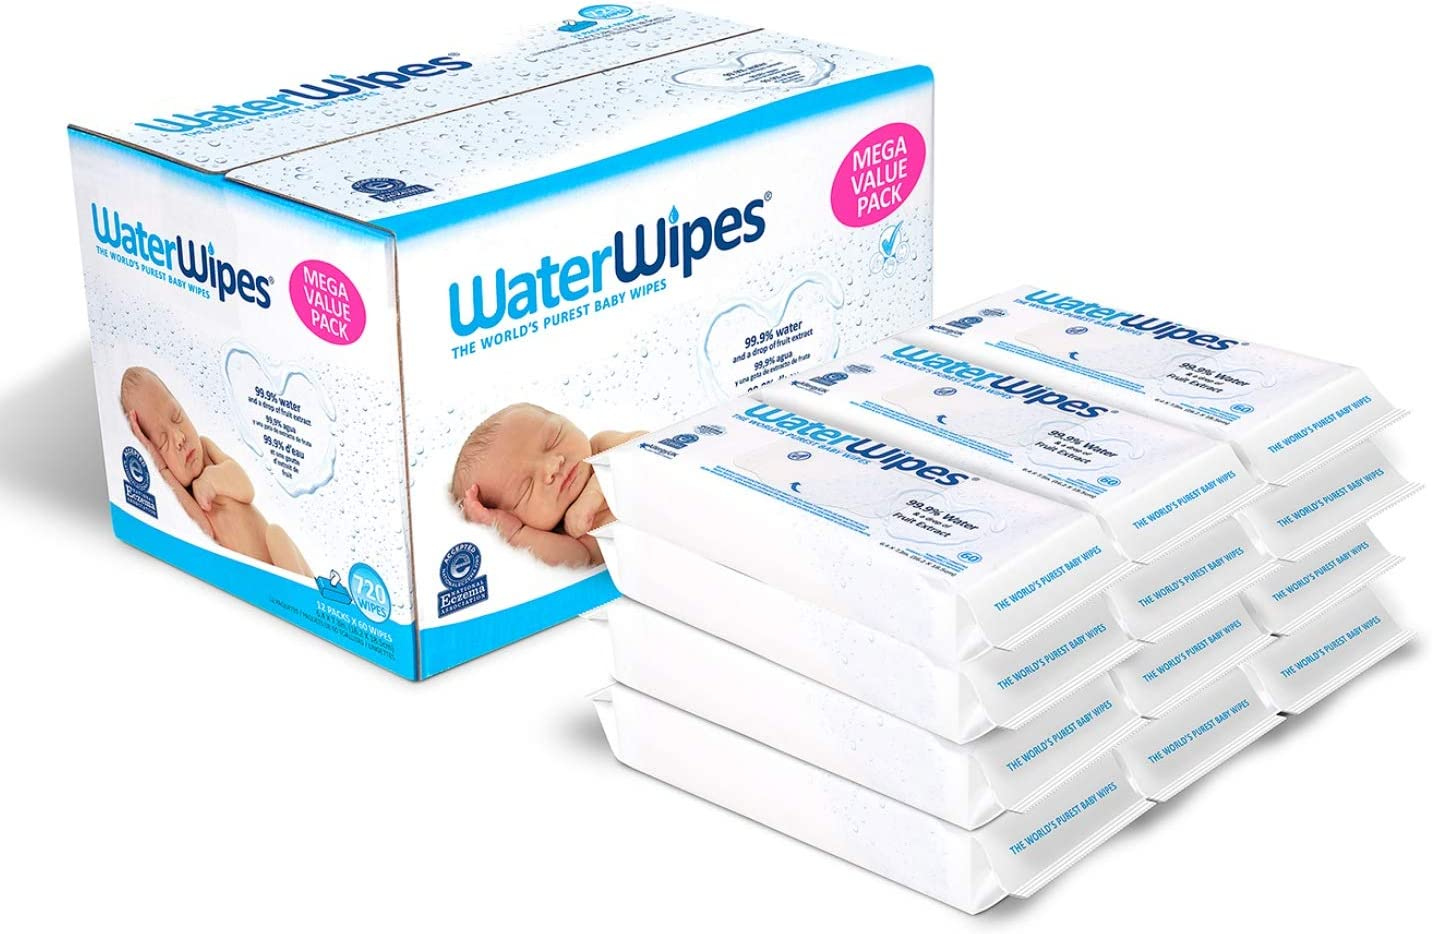 WaterWipes Original Baby Limited time sale Wipes 99.9% Boston Mall Hypoall Water Unscented